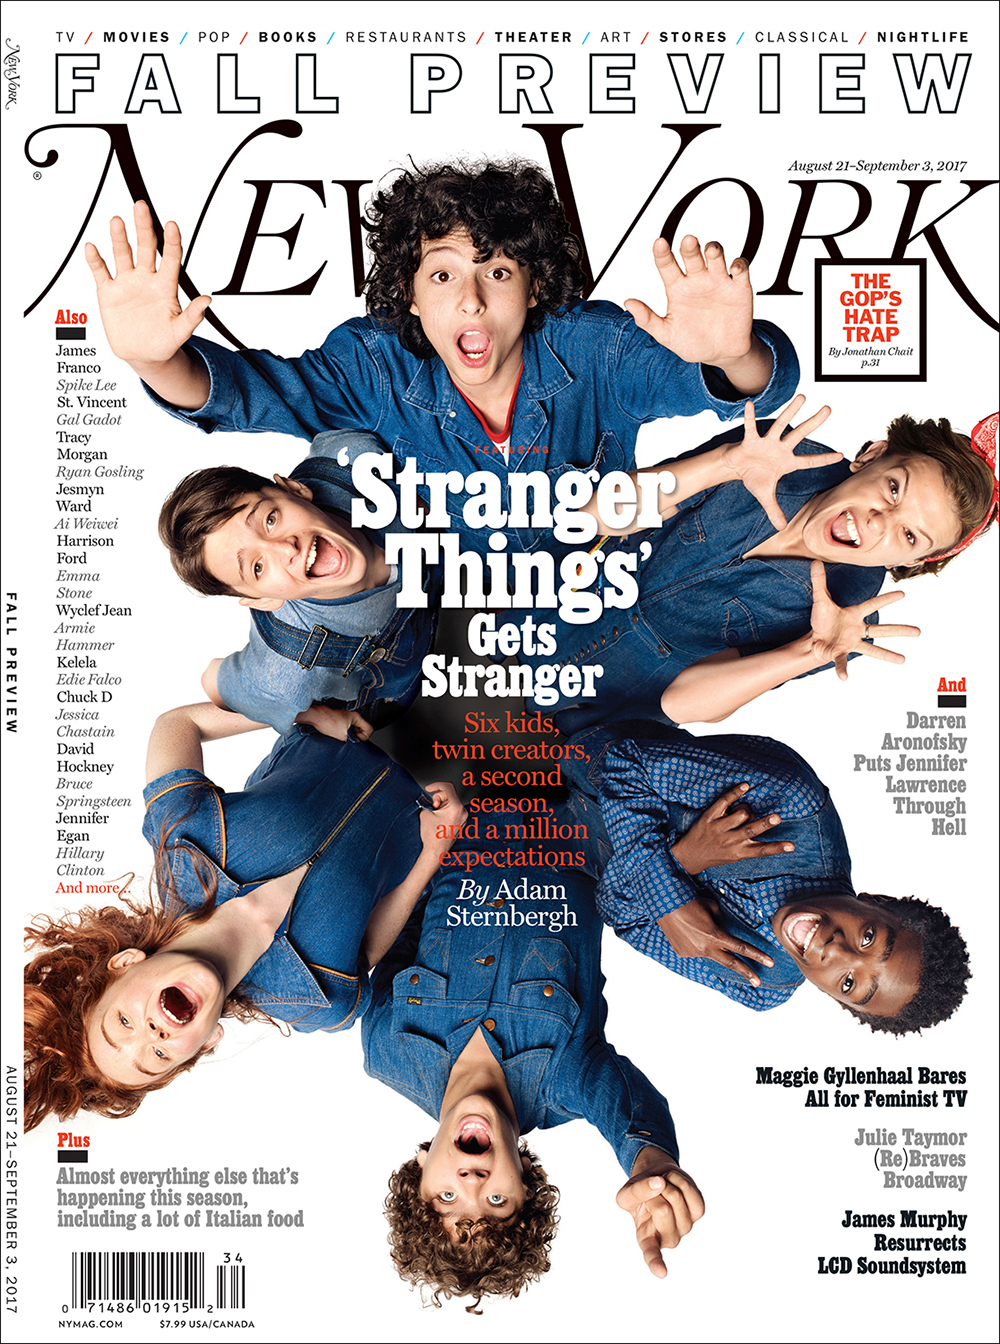 art streiber photographs the young stars of stranger things for new york magazine s fall. Black Bedroom Furniture Sets. Home Design Ideas